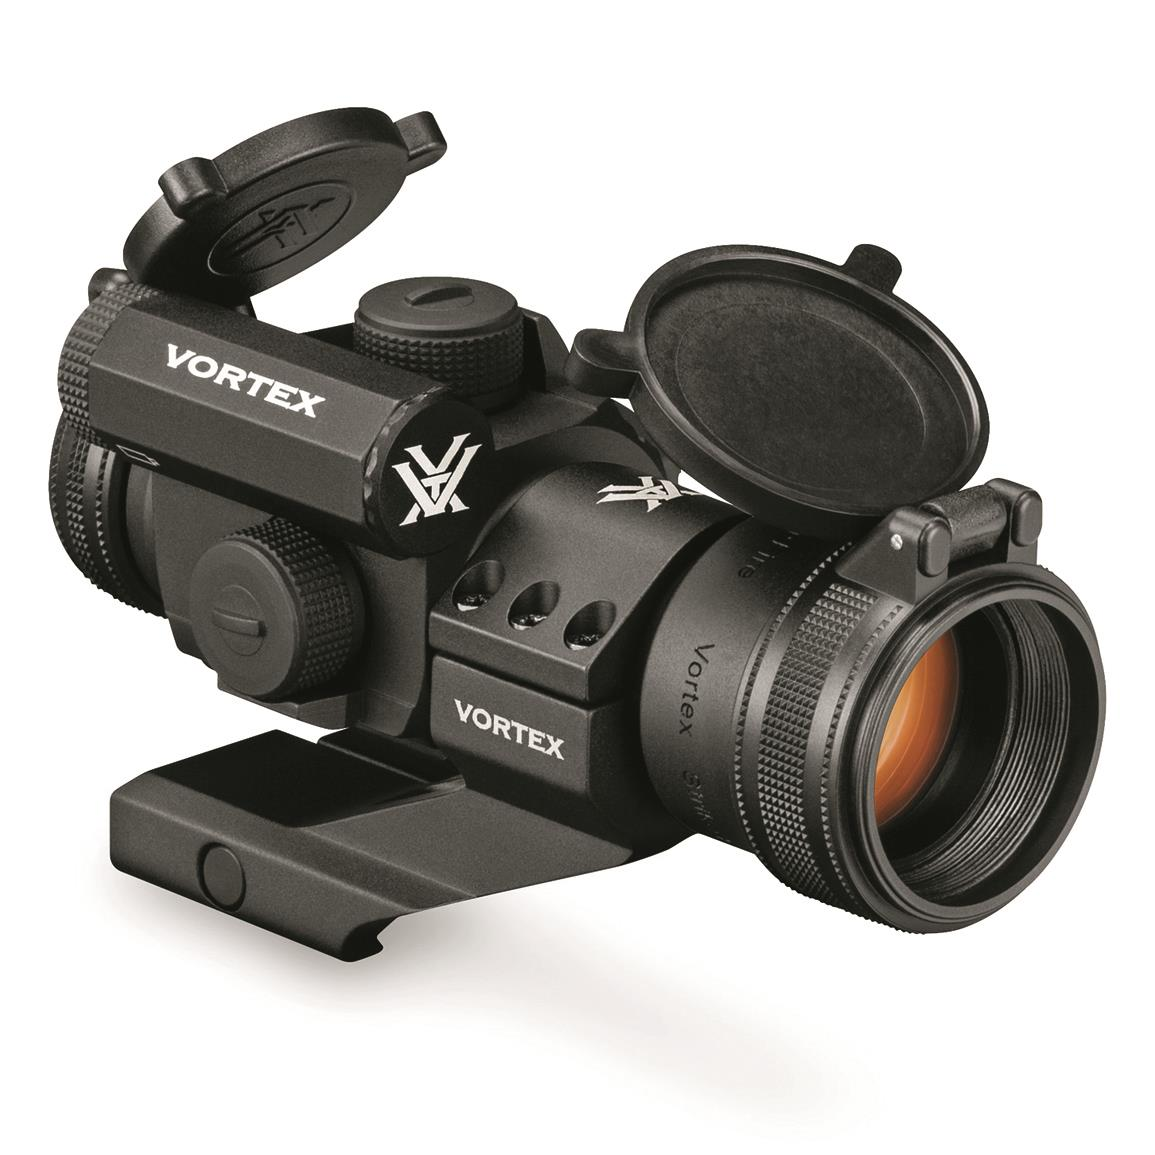 Vortex StrikeFire II, 1x30mm, Illuminated Red/Green Dot, Rifle Sight